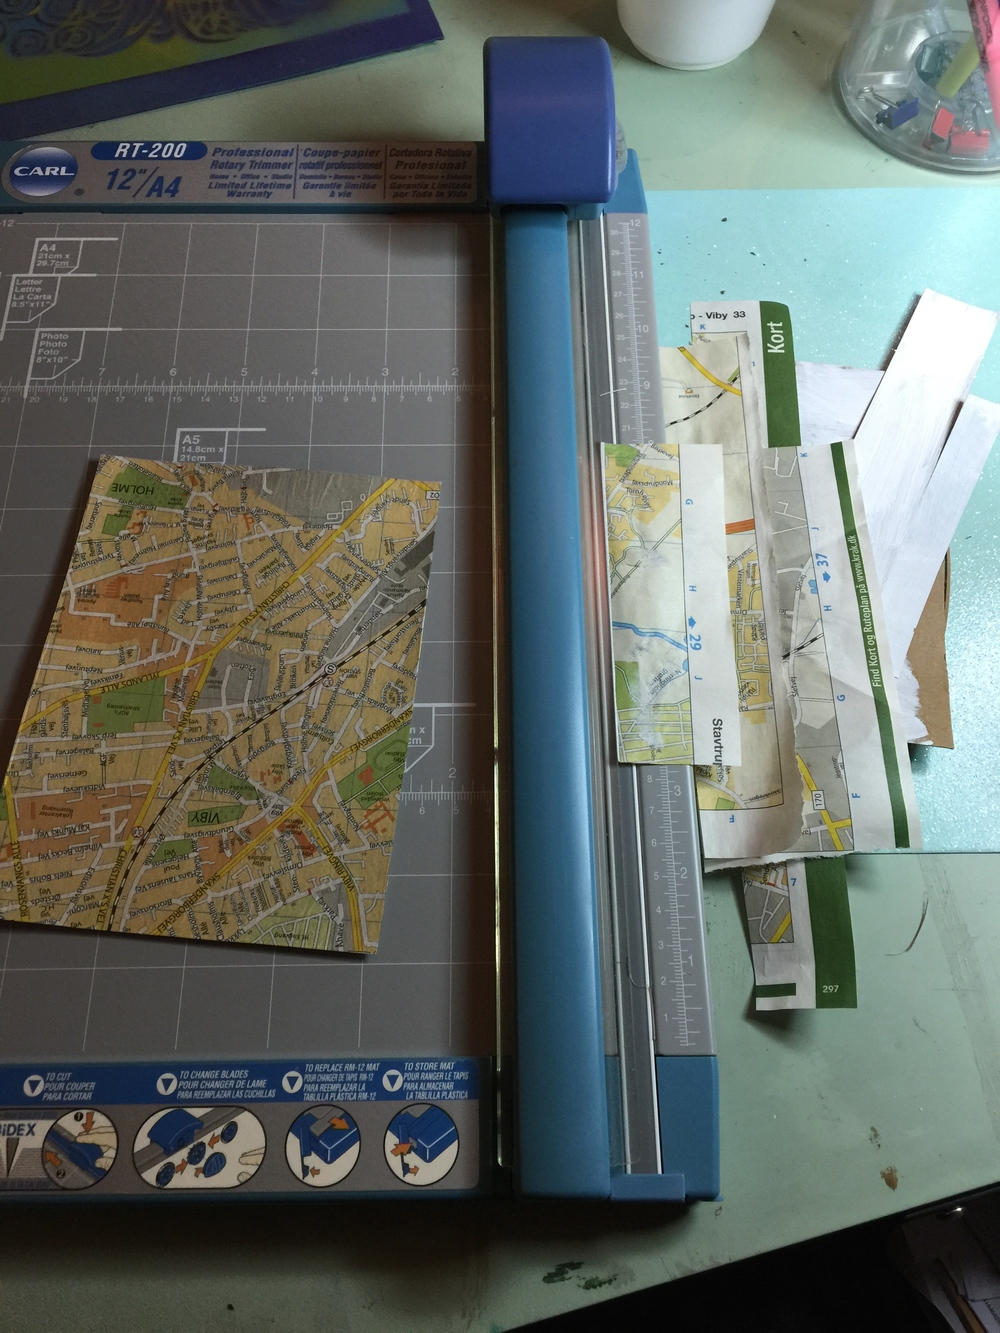 Glue the map to cardboard using a glue that will not leave the paper winkled when its dry.( decoupage, scrapbooking or archival glue) Examine the surface, smooth away wrinkles and gently wipe away any glue on the surface to make drawing easier. Trim excess paper.